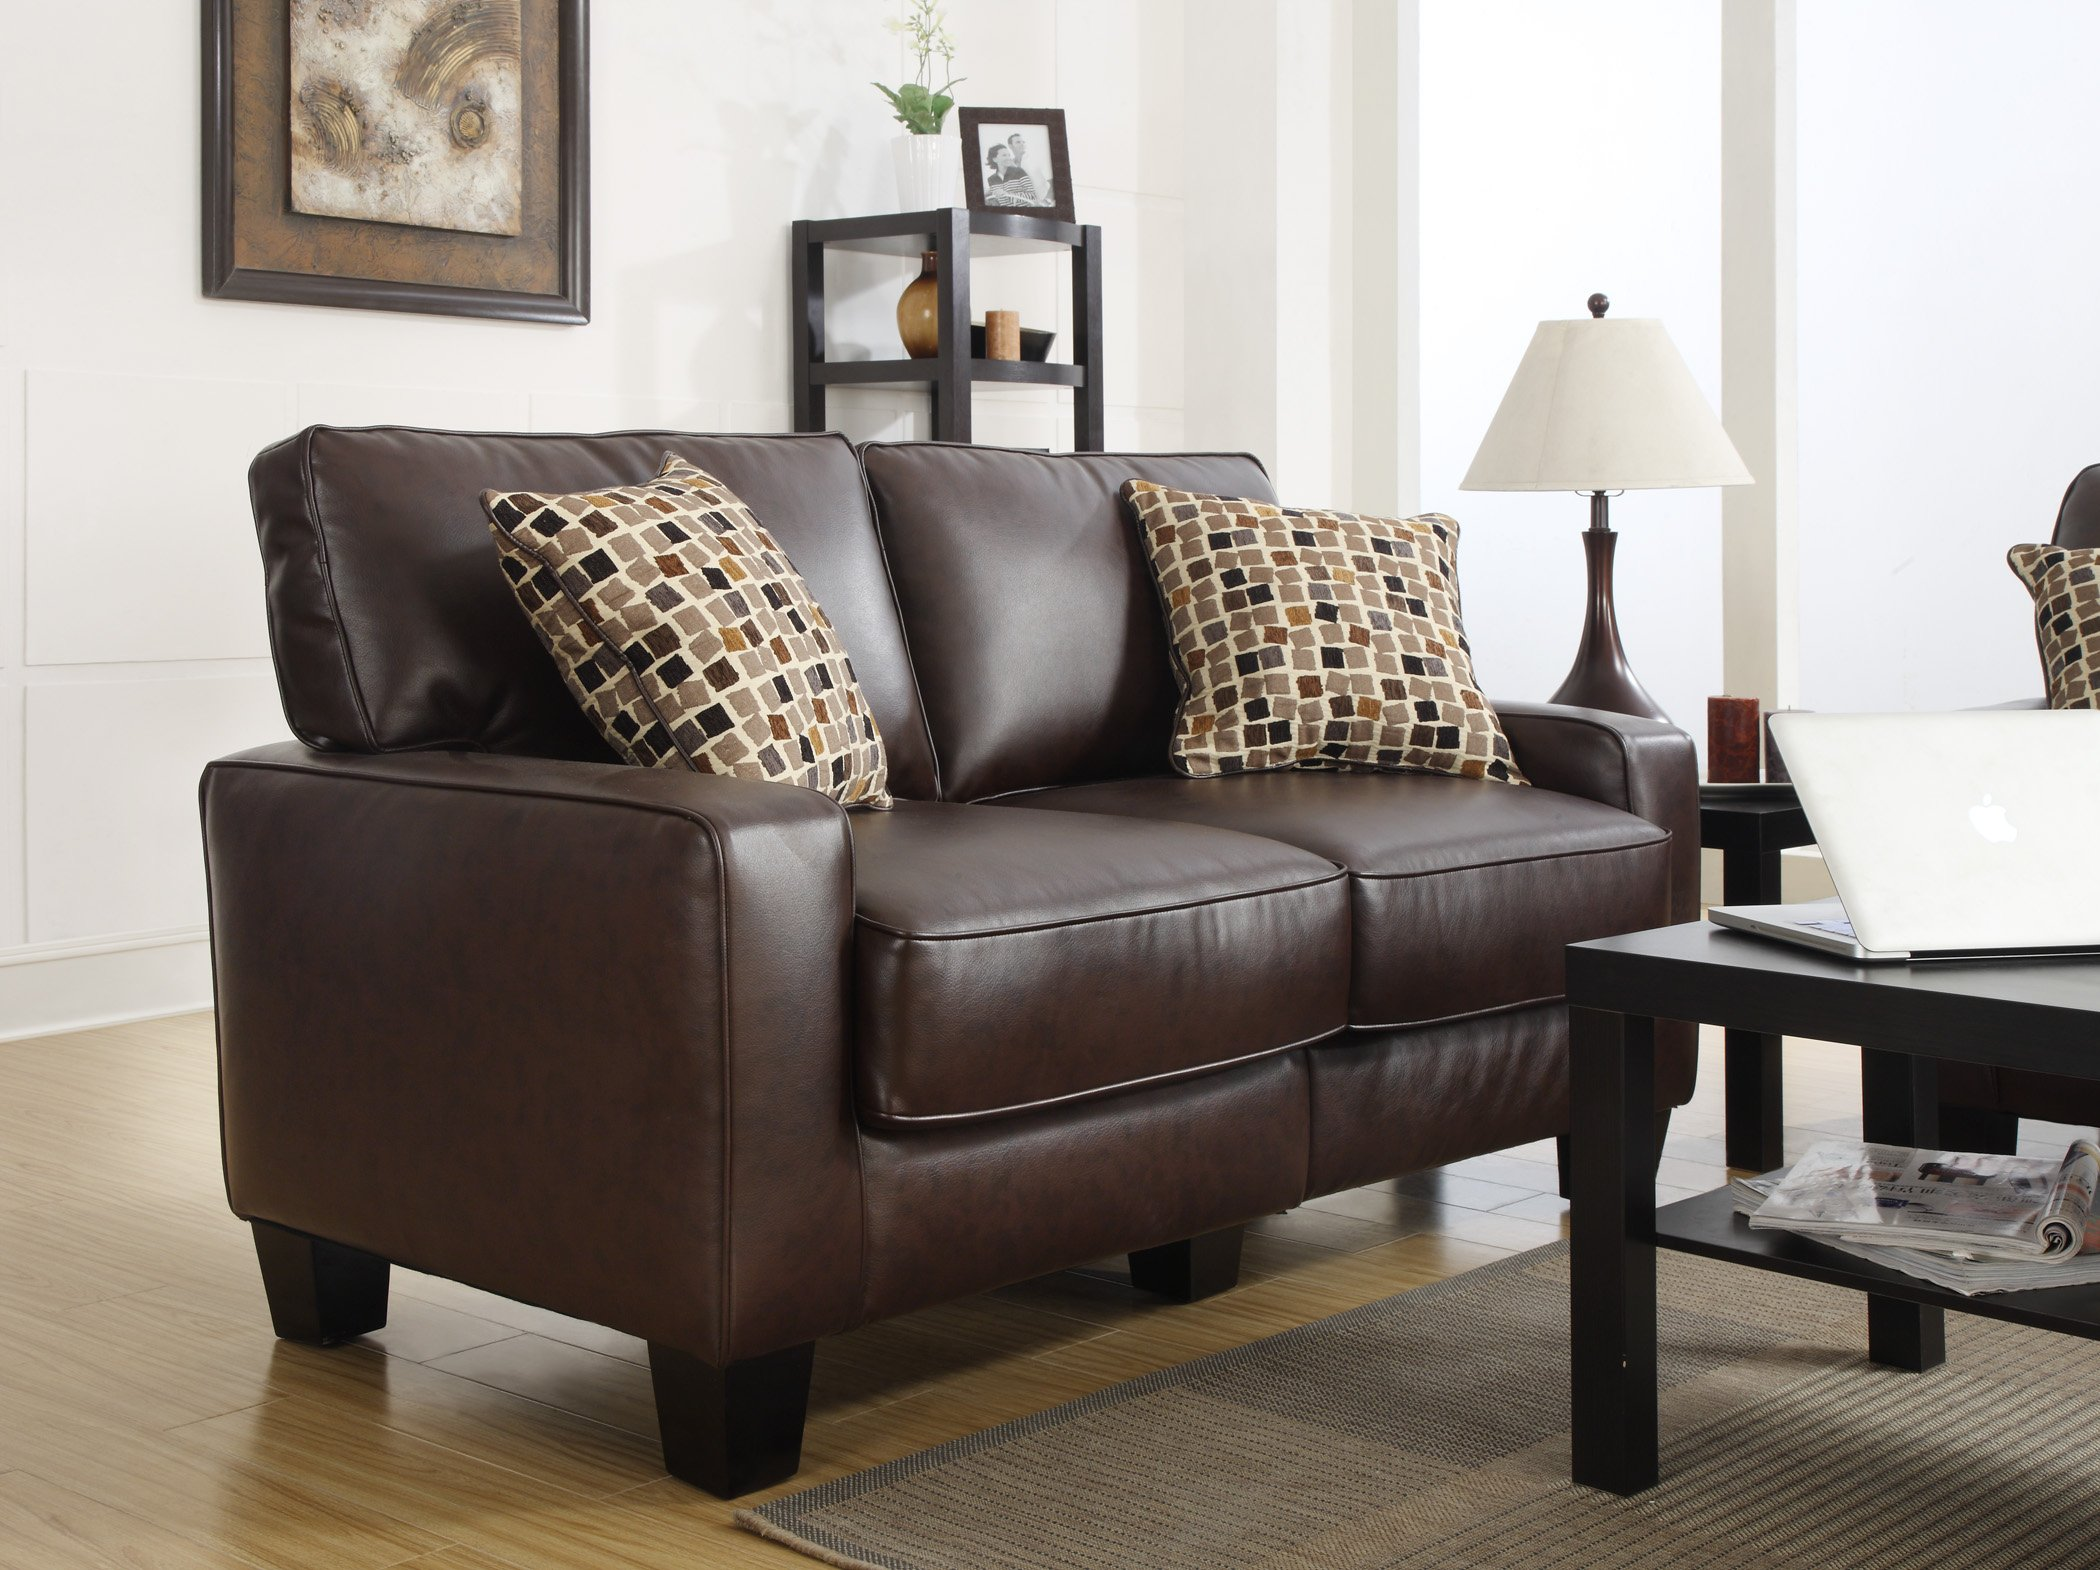 Serta RTA Palisades Collection 61'' Bonded Leather Loveseat in Chestnut Brown, CR43532P